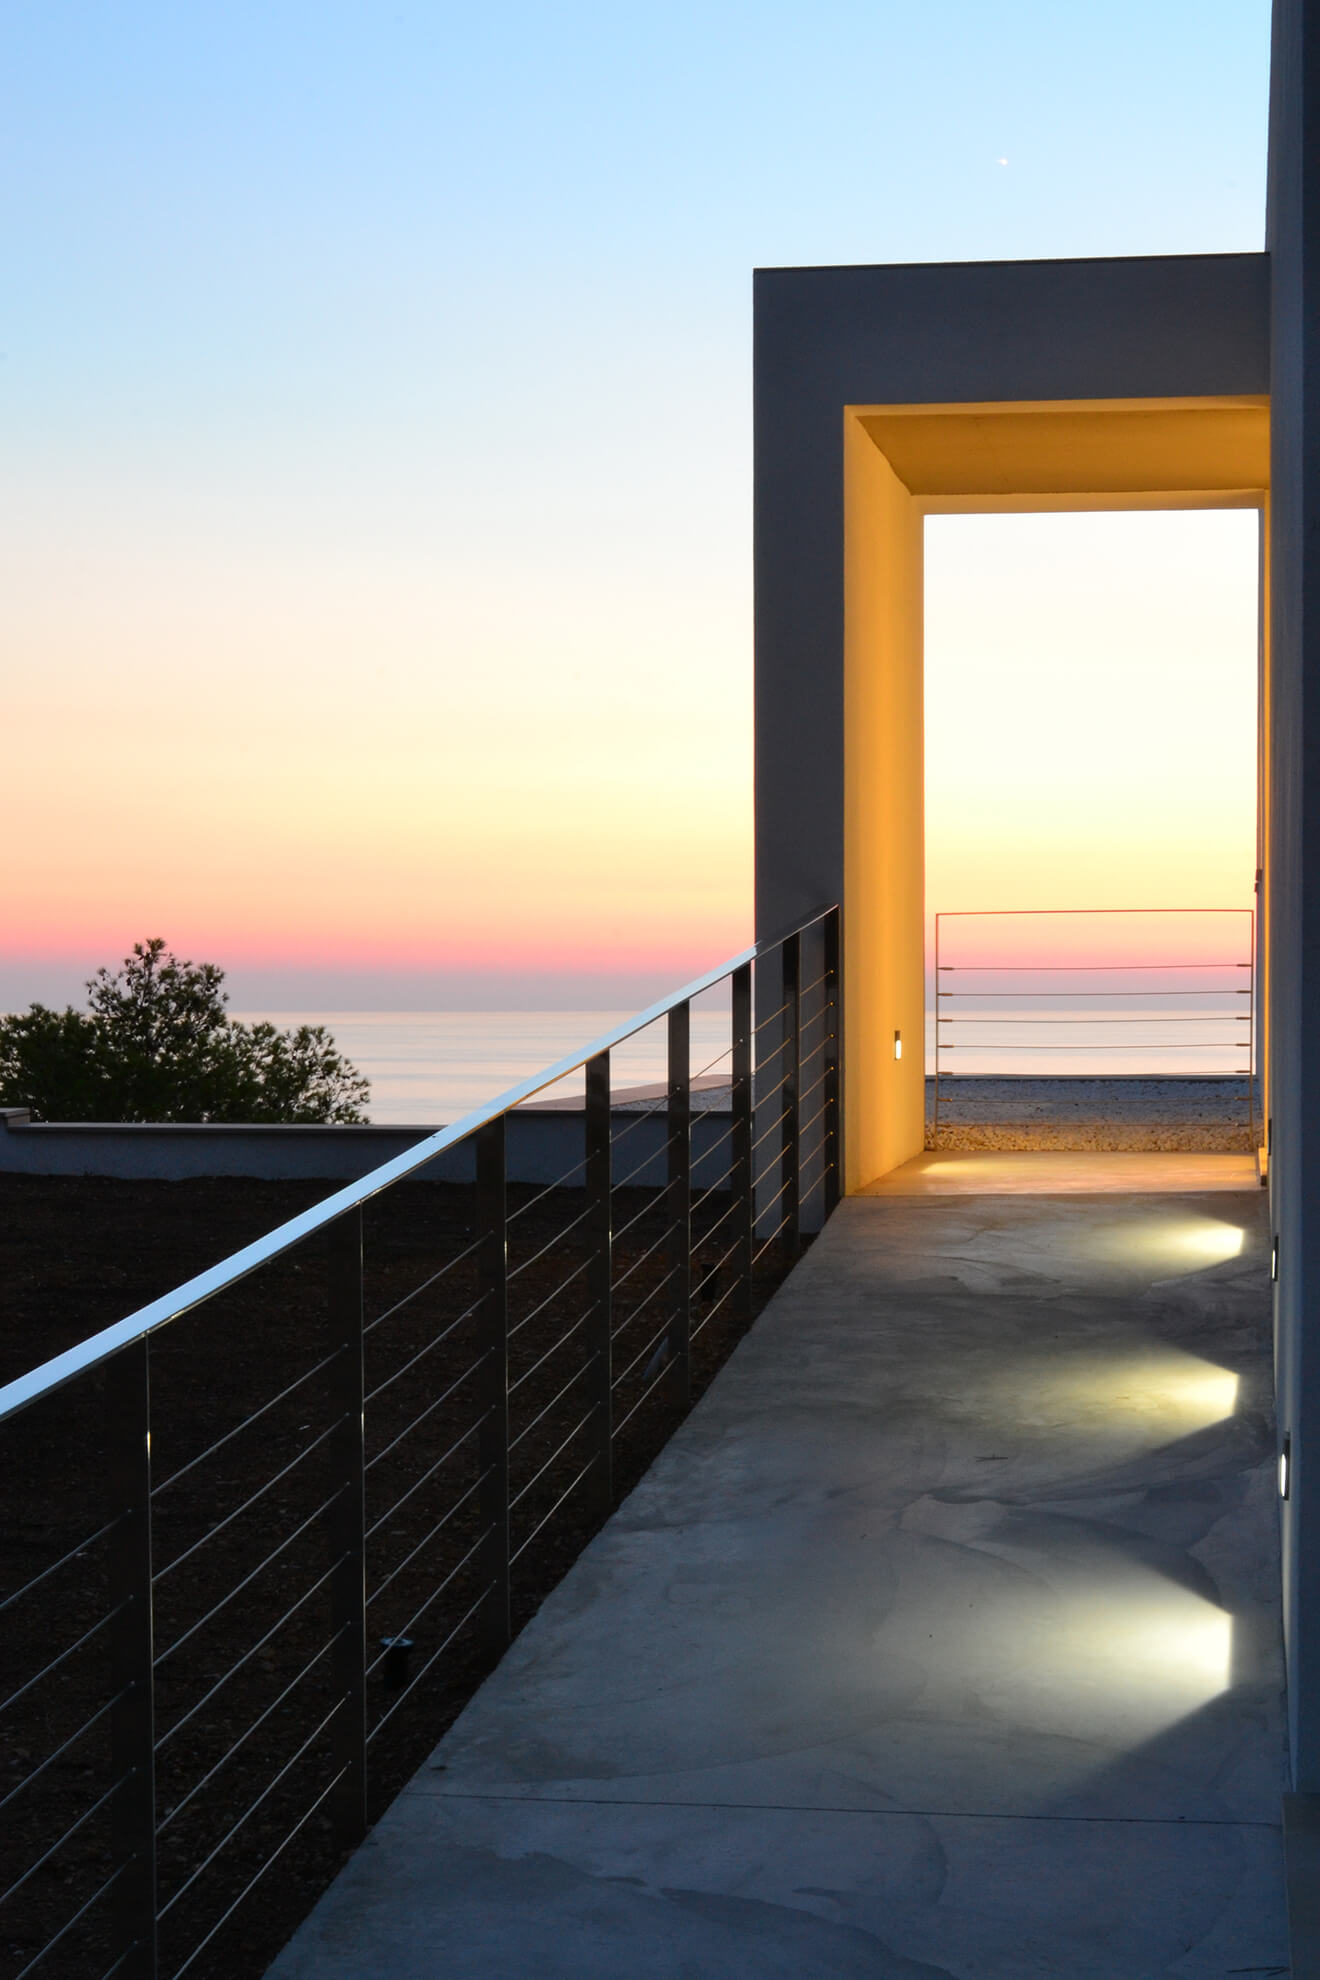 Detail view of the entrance of the Maioris house overlooking the sea